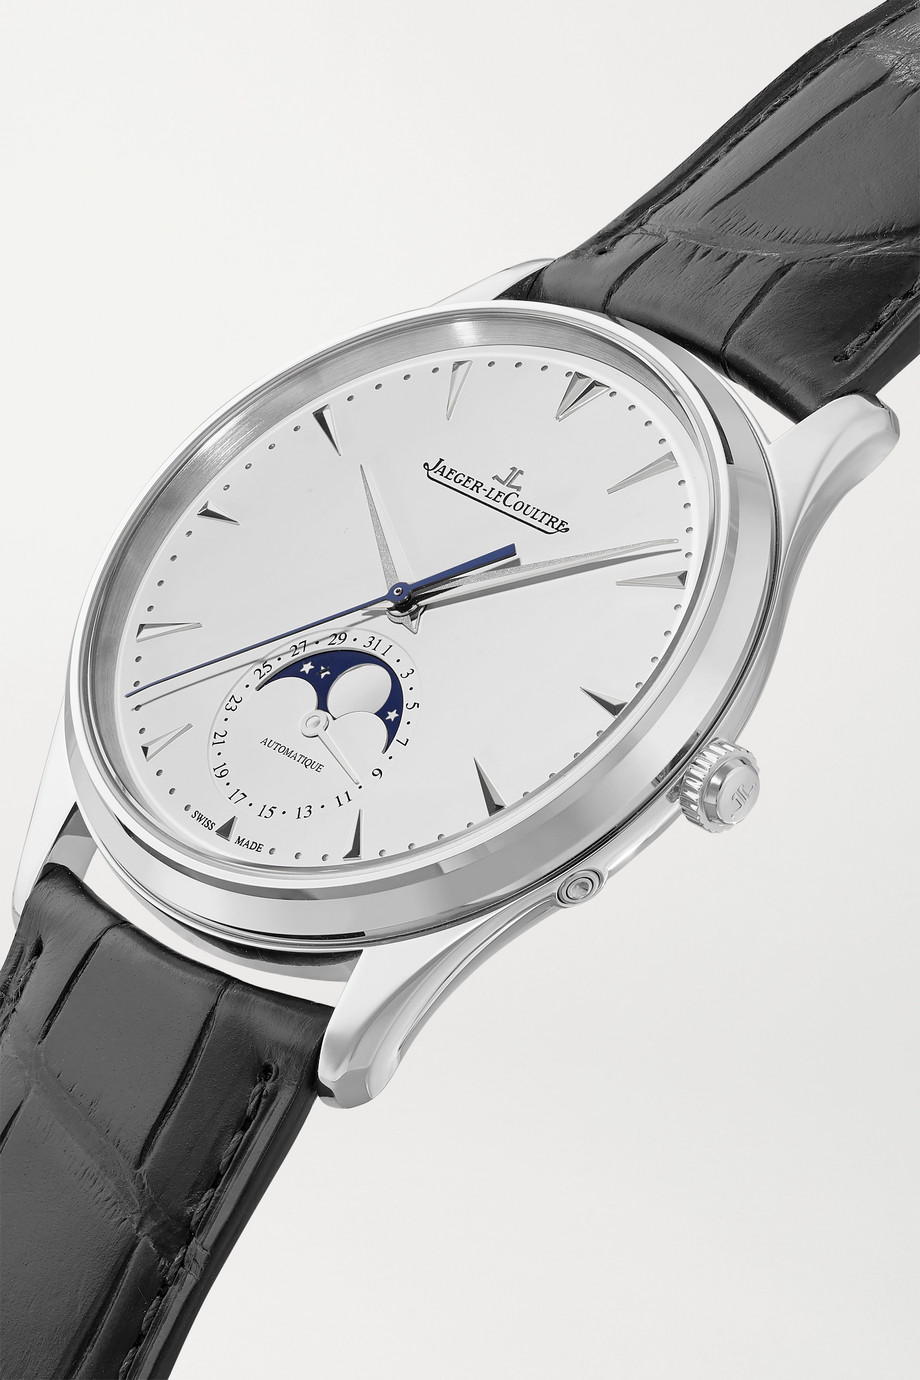 Jaeger-LeCoultre Master Ultra Thin Moon Automatic 39mm stainless steel and alligator watch